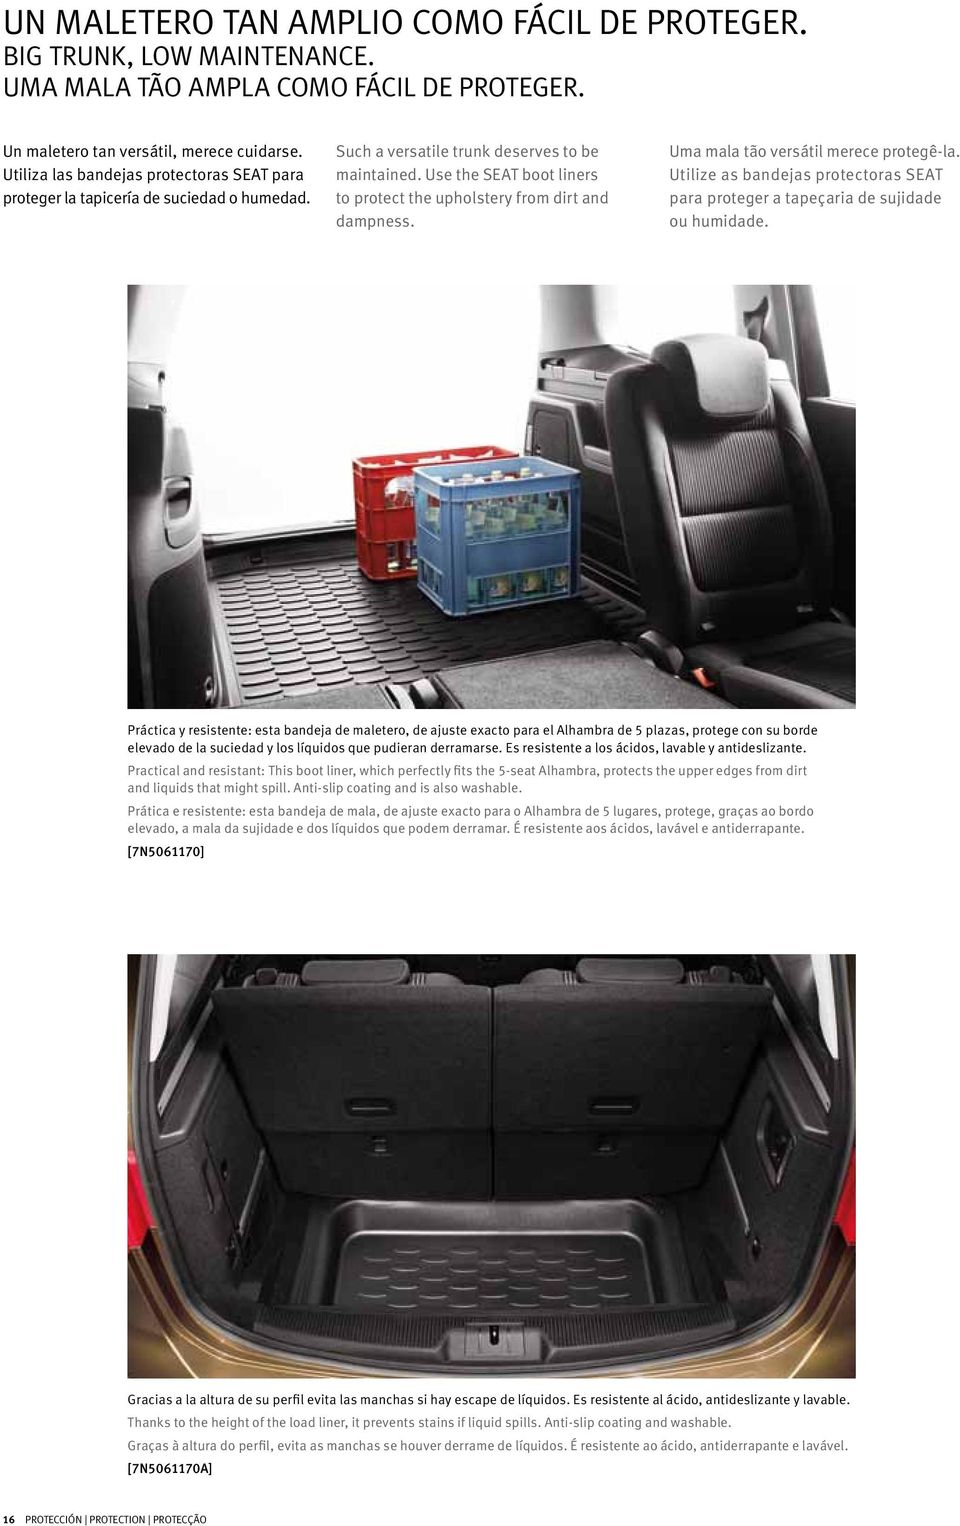 Use the SEAT boot liners to protect the upholstery from dirt and dampness. Uma mala tão versátil merece protegê-la.